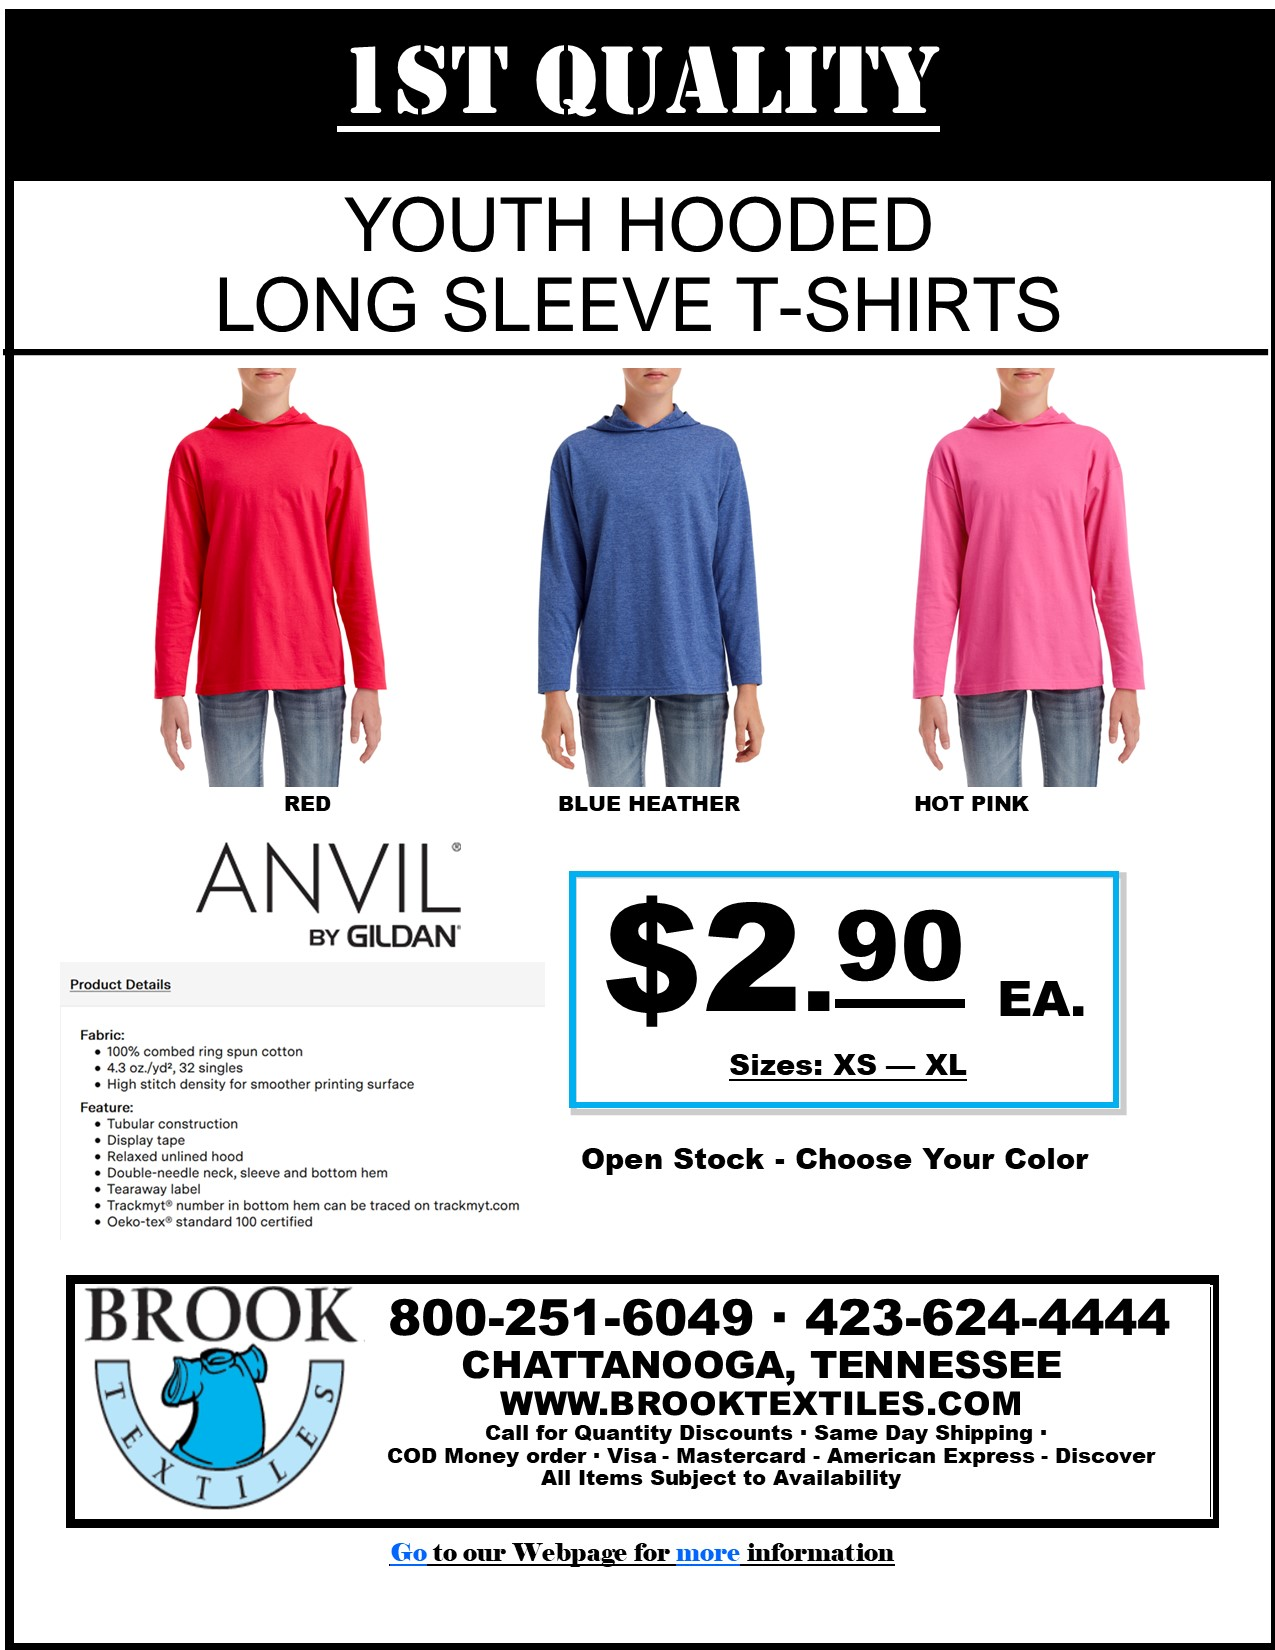 1st-anvil-long-sleeve-hooded-t-youth.jpg